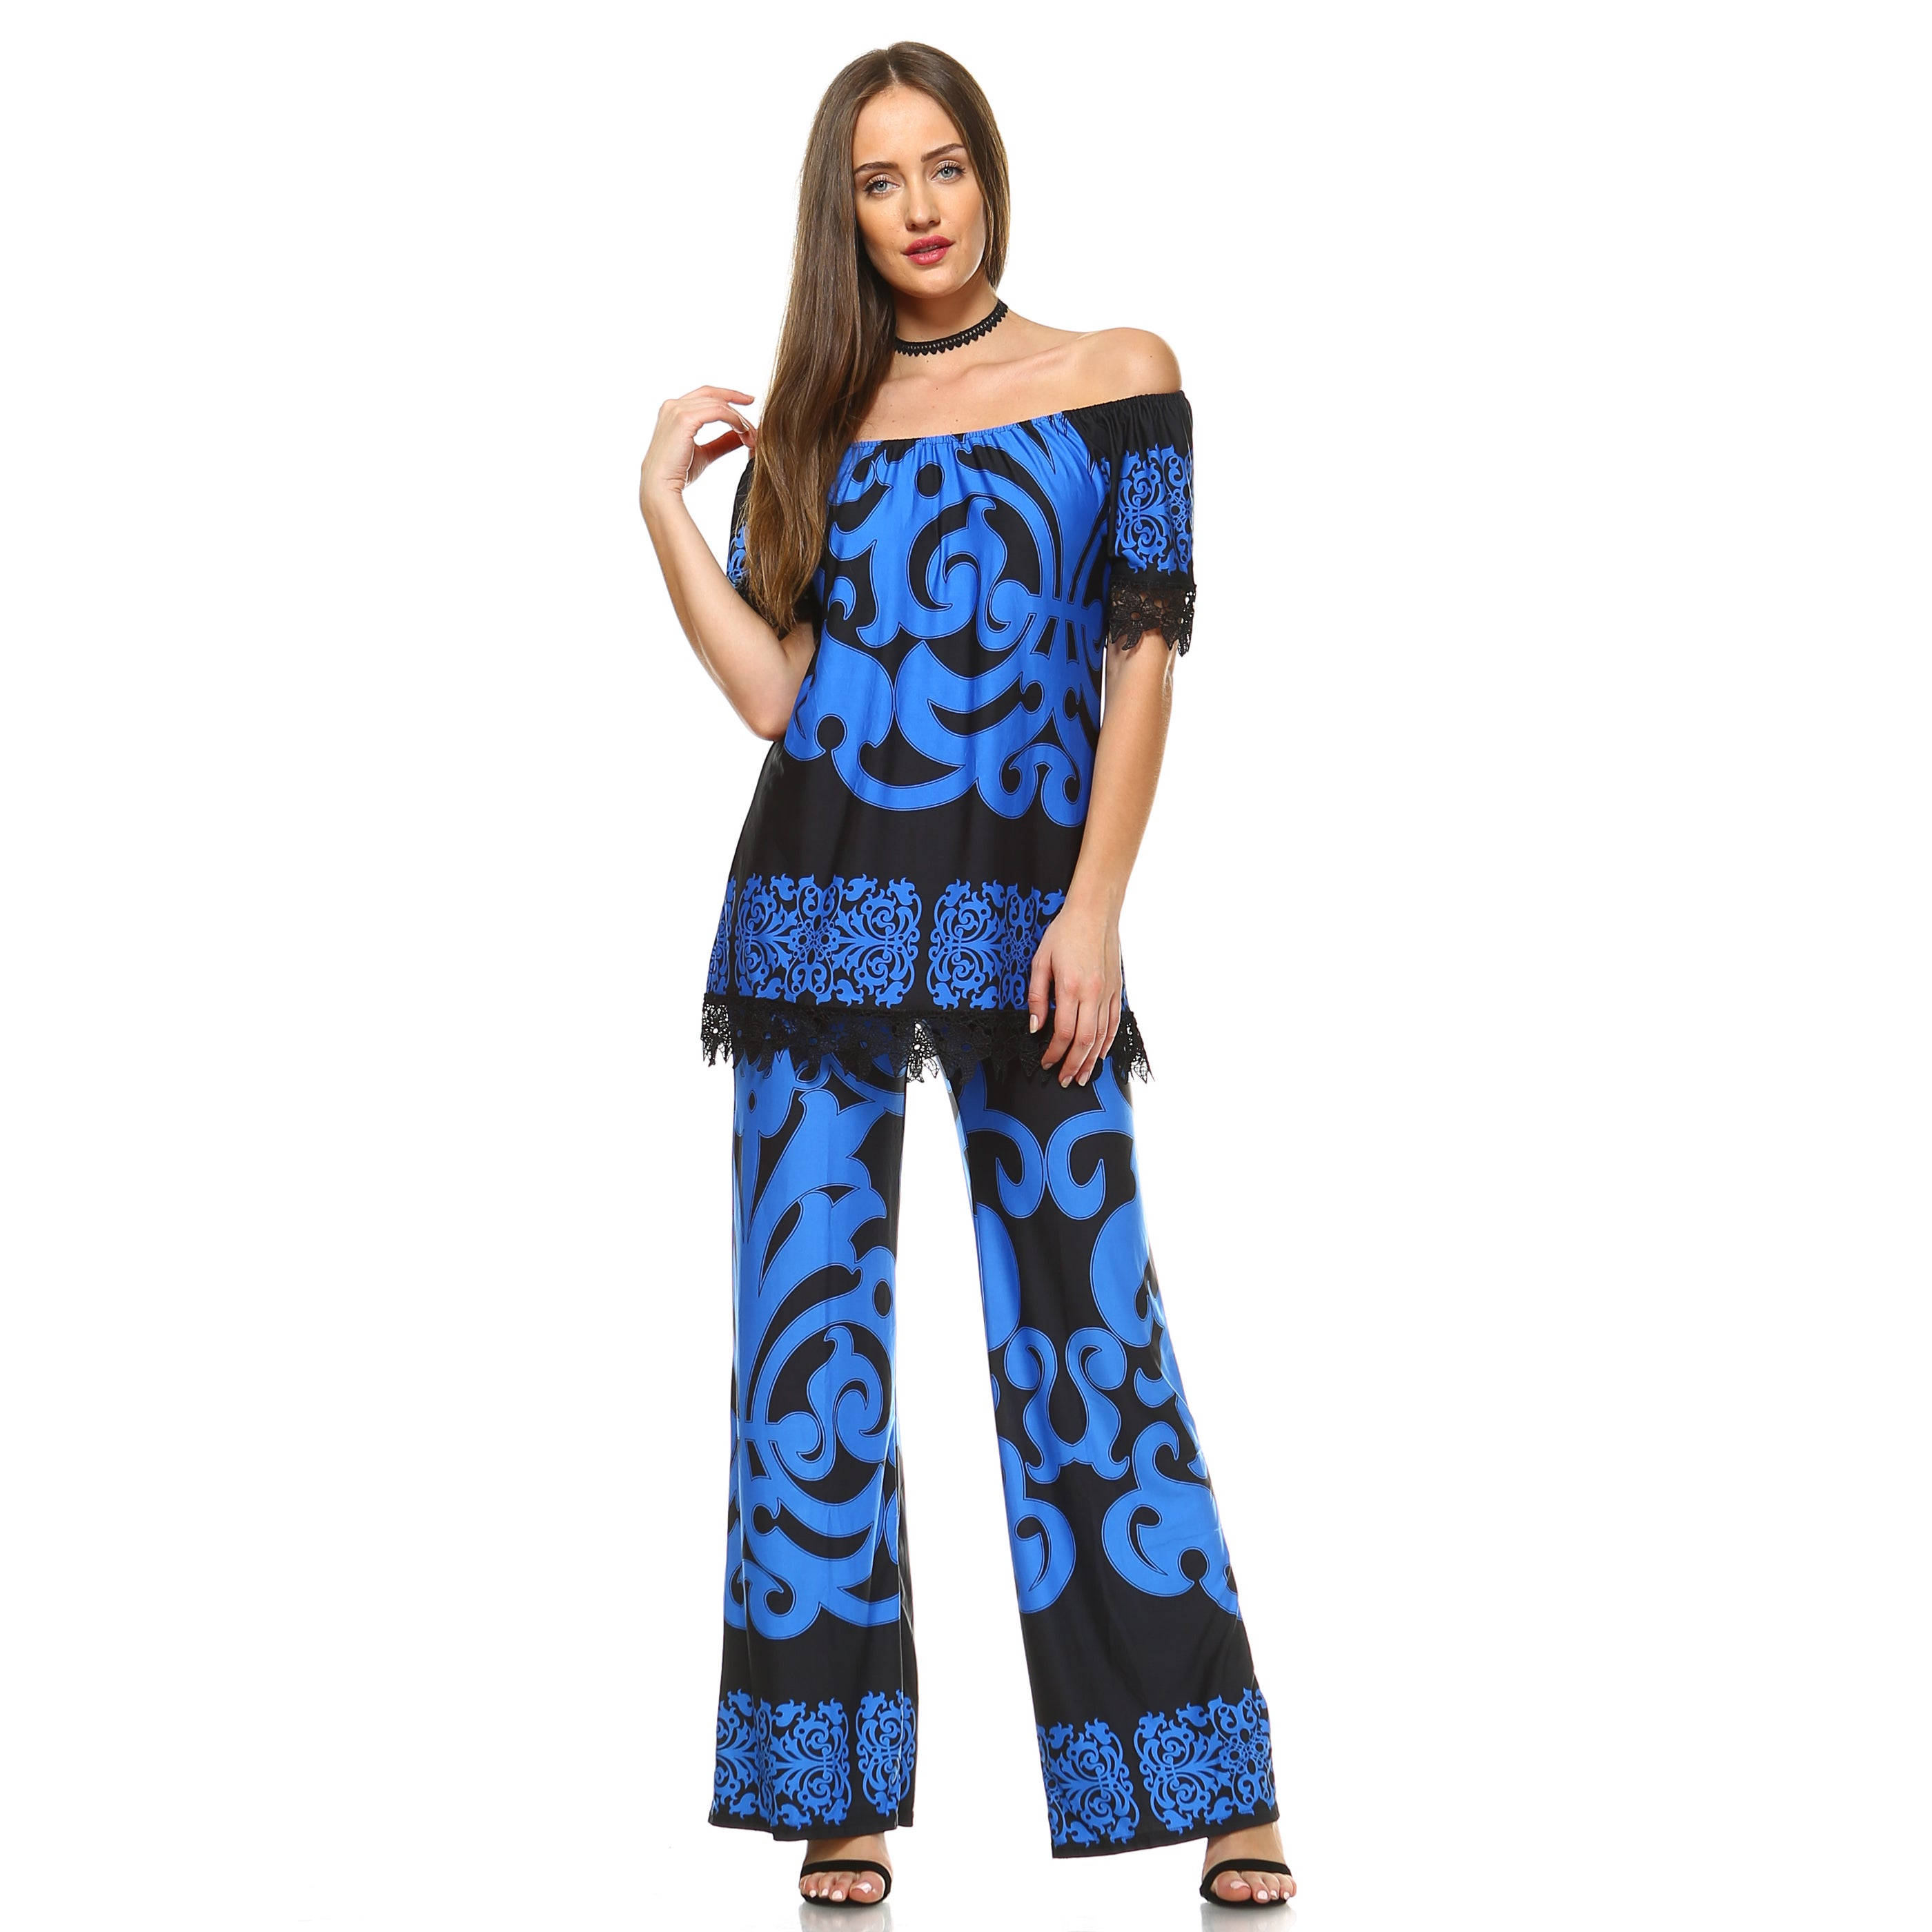 White Mark Print from Tip to Toe 2-piece Top and Pants Se...